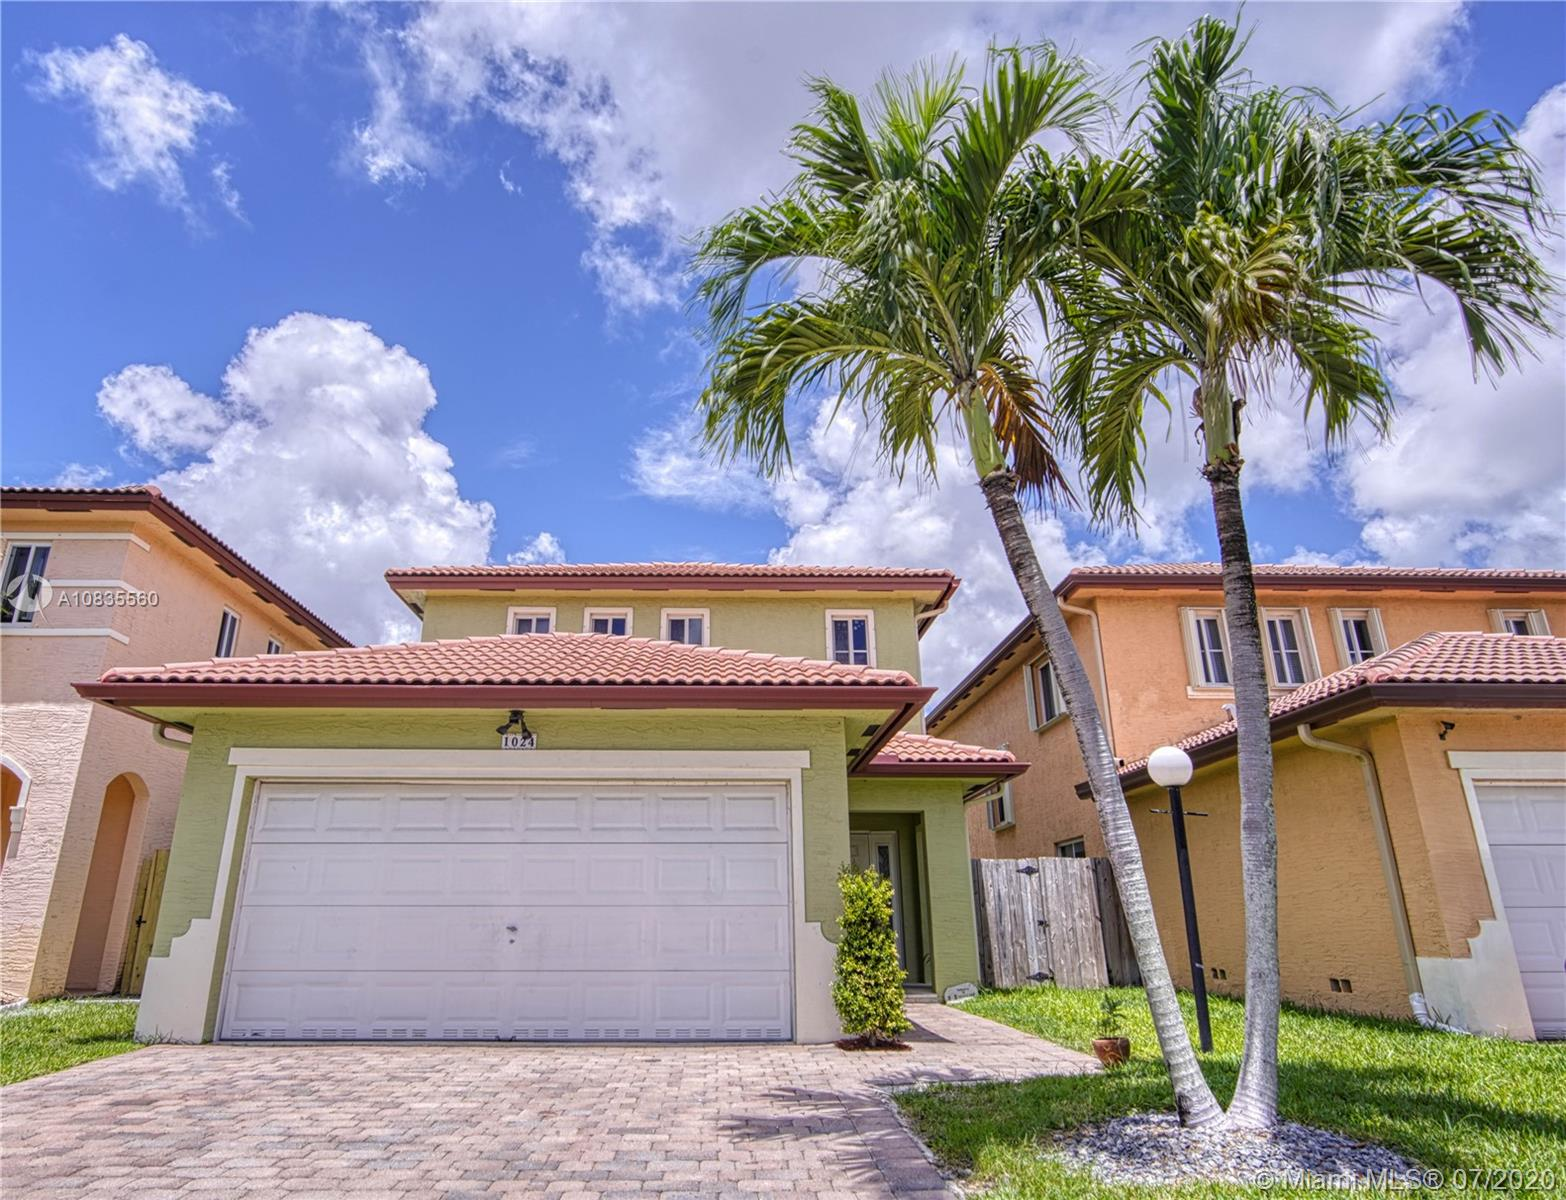 1024 NE 41 TER, Homestead, FL 33033 - Homestead, FL real estate listing